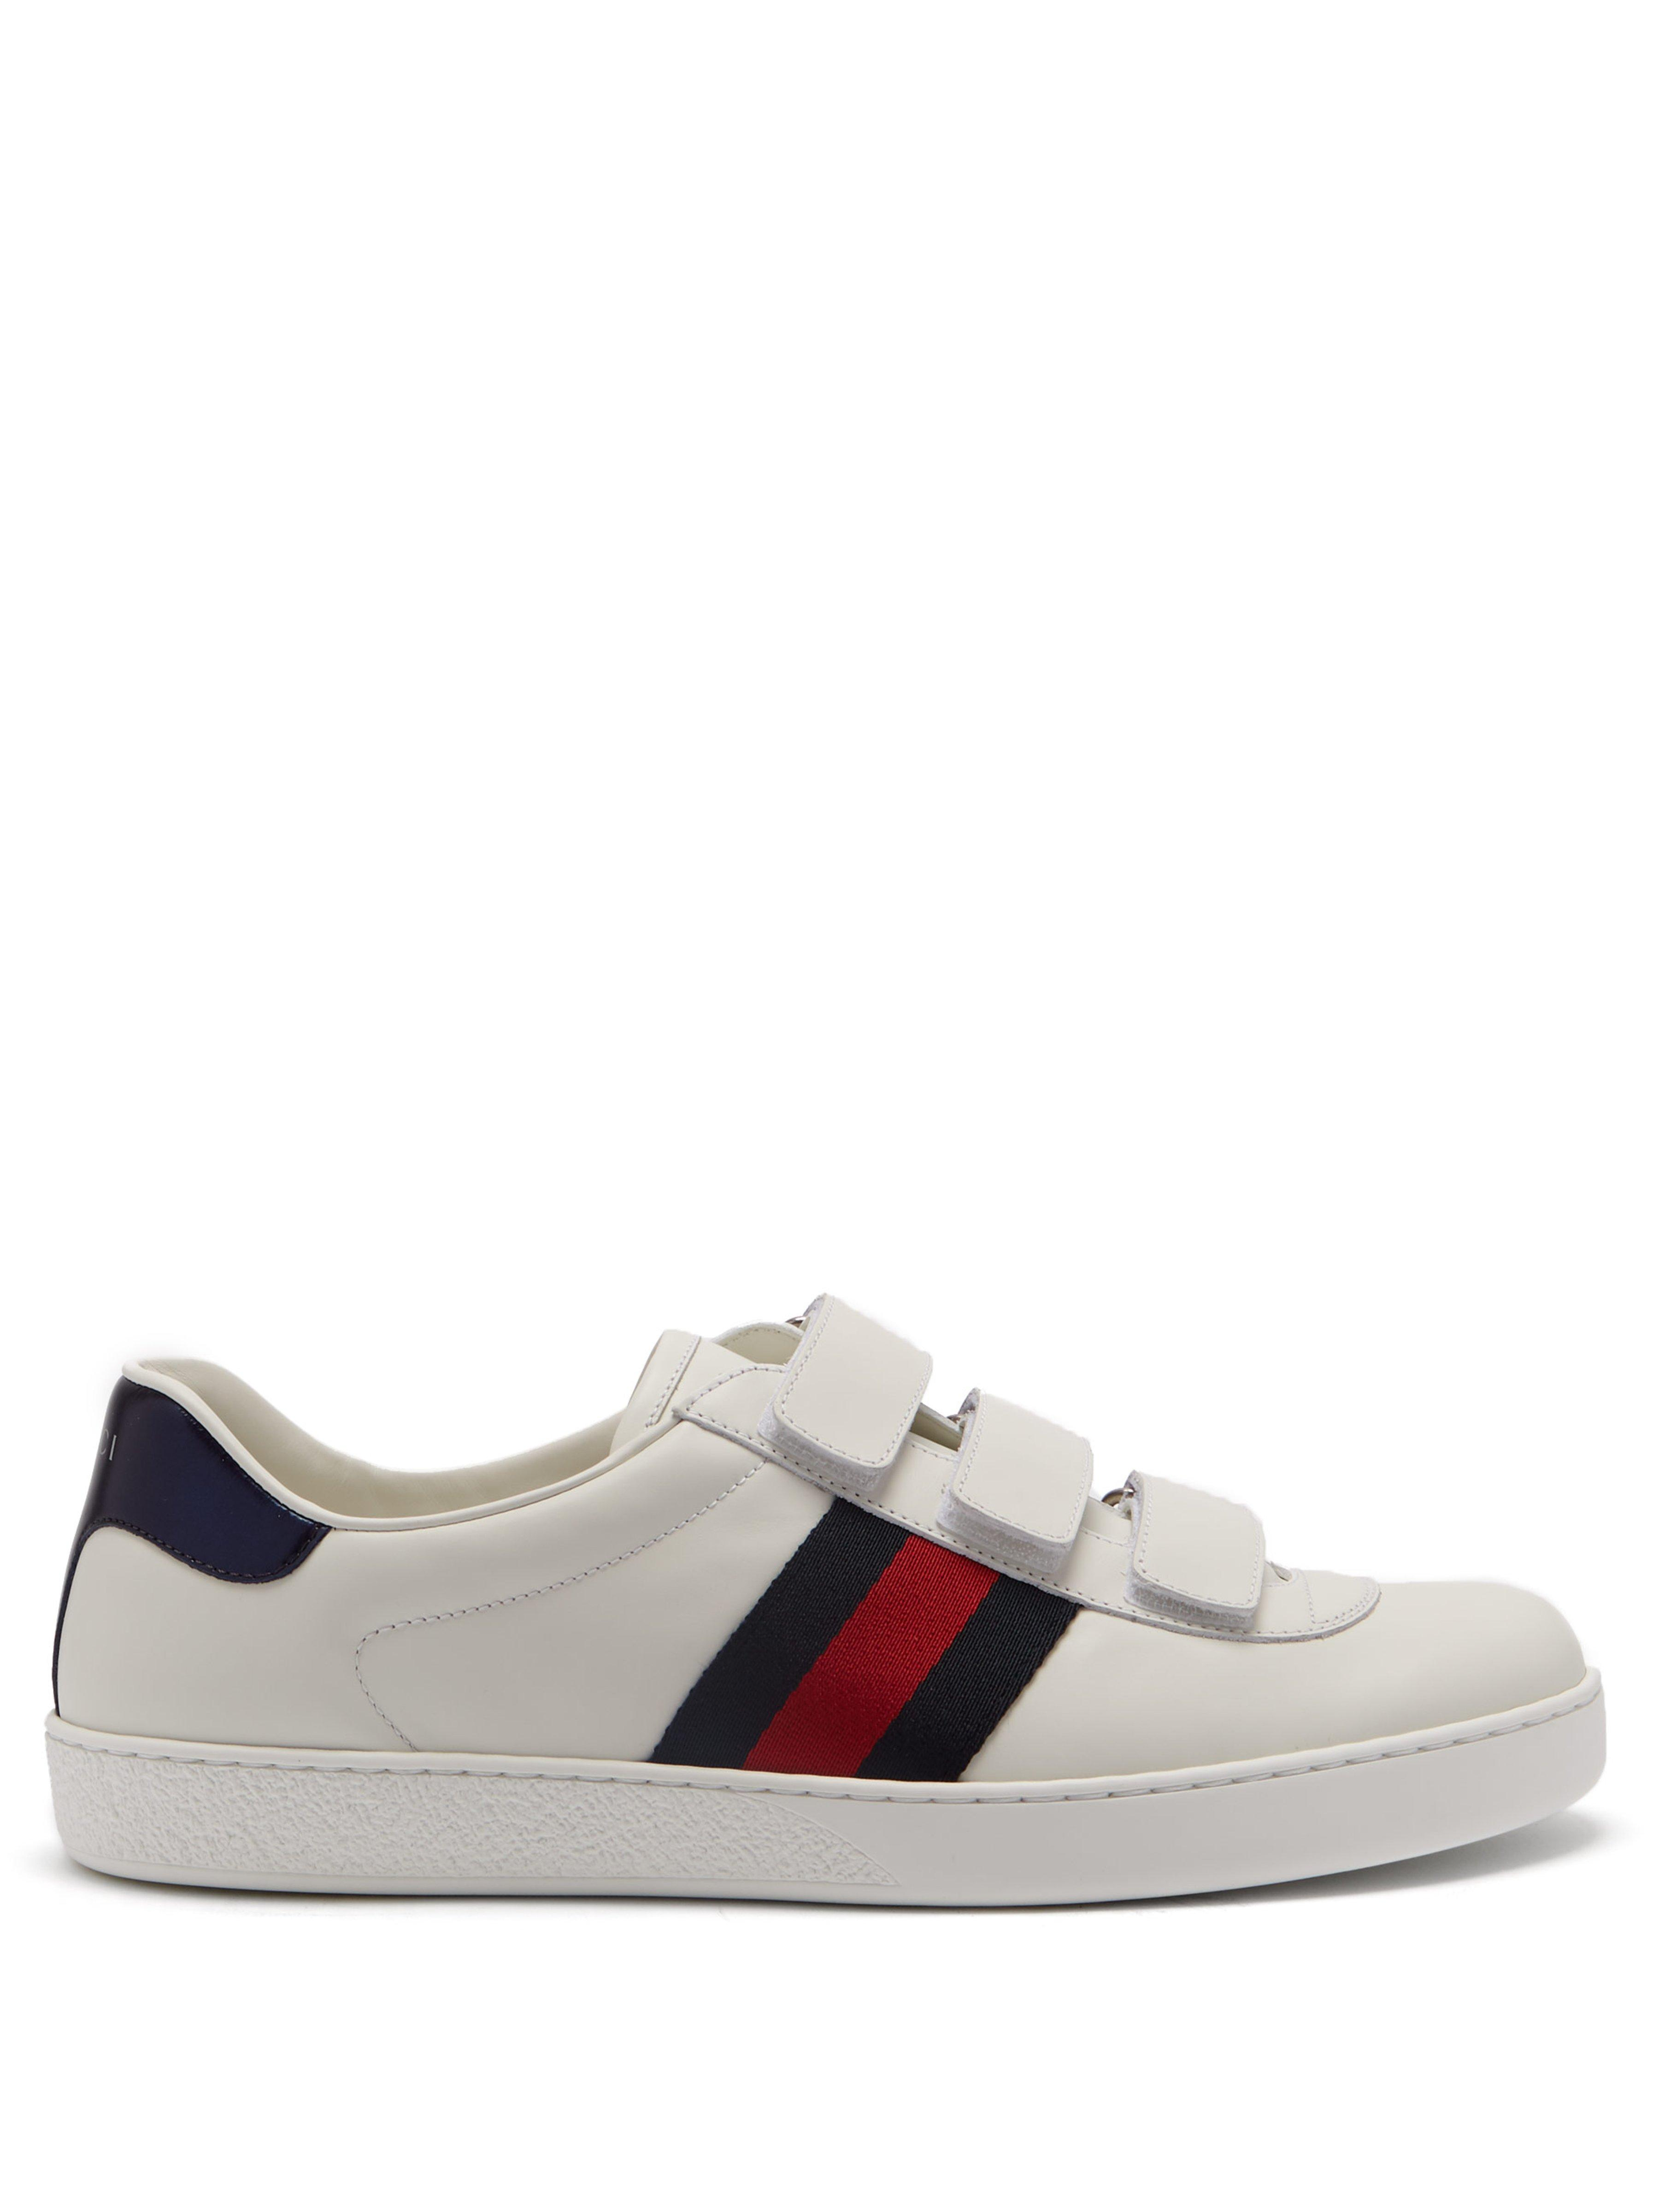 77164346a61 Gucci New Ace Web Stripe Low Top Leather Trainers for Men - Lyst